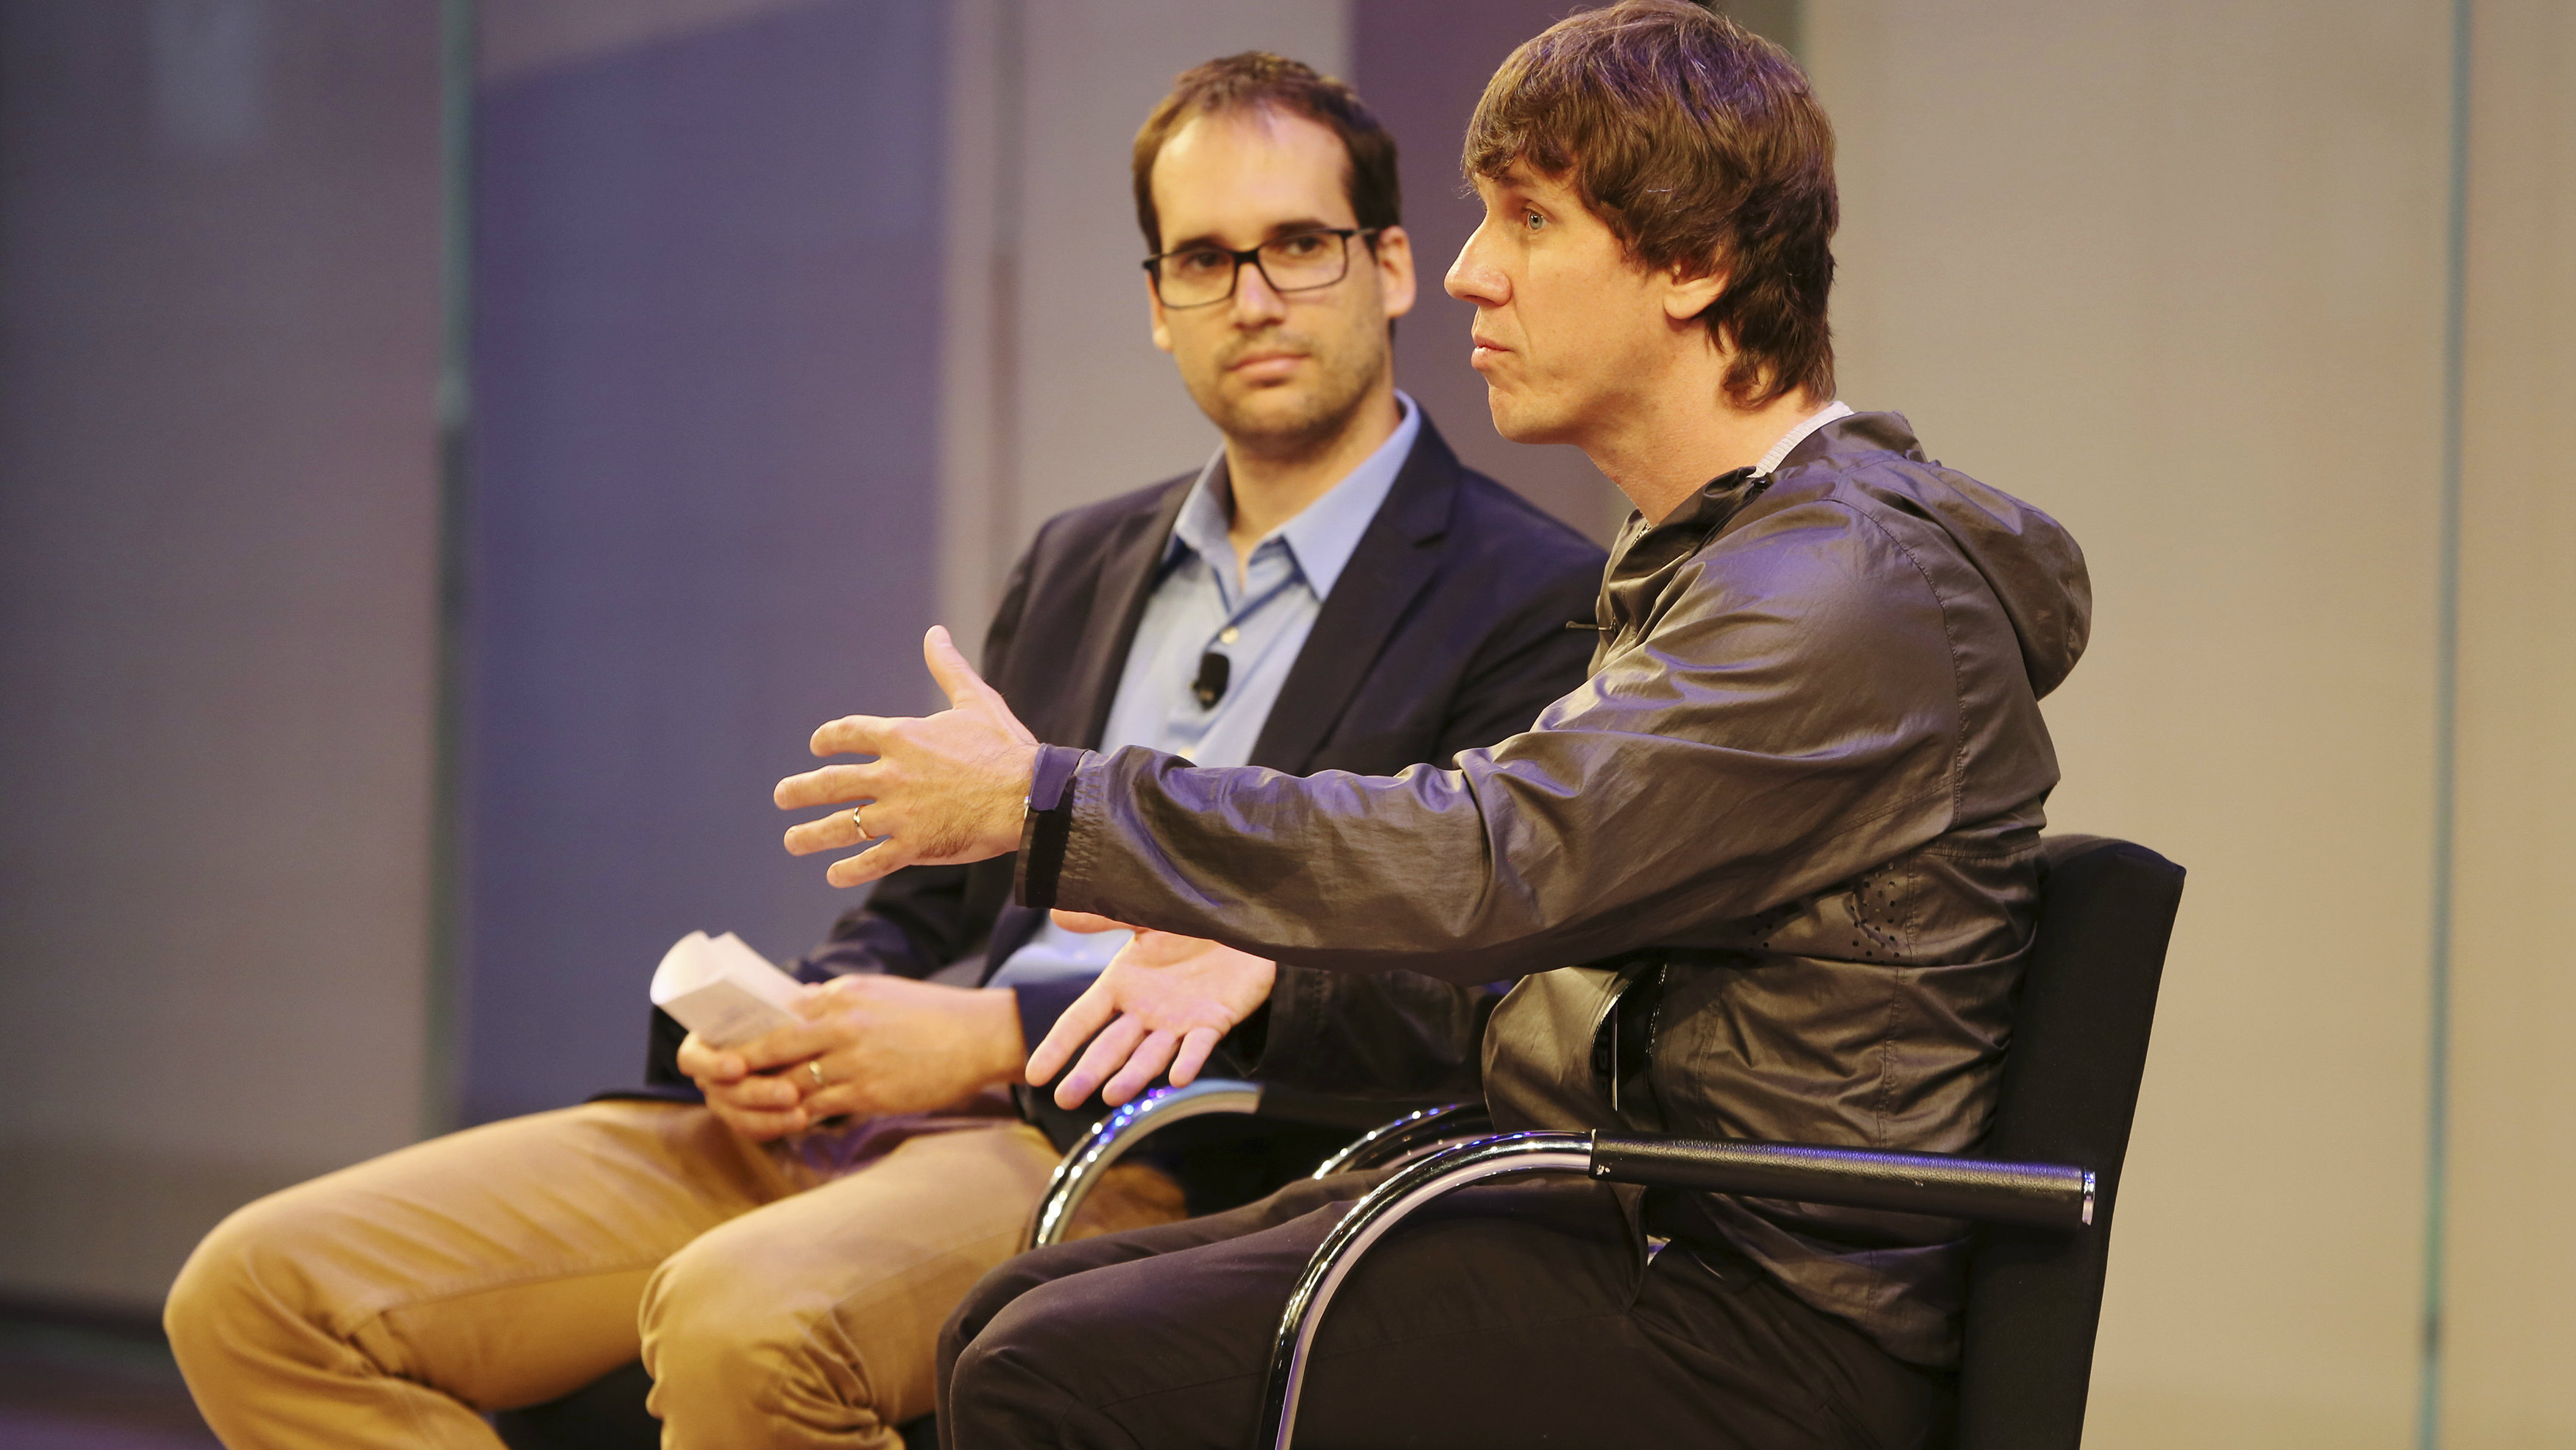 Dennis Crowley teaches important lessons about growing a succesful startup.